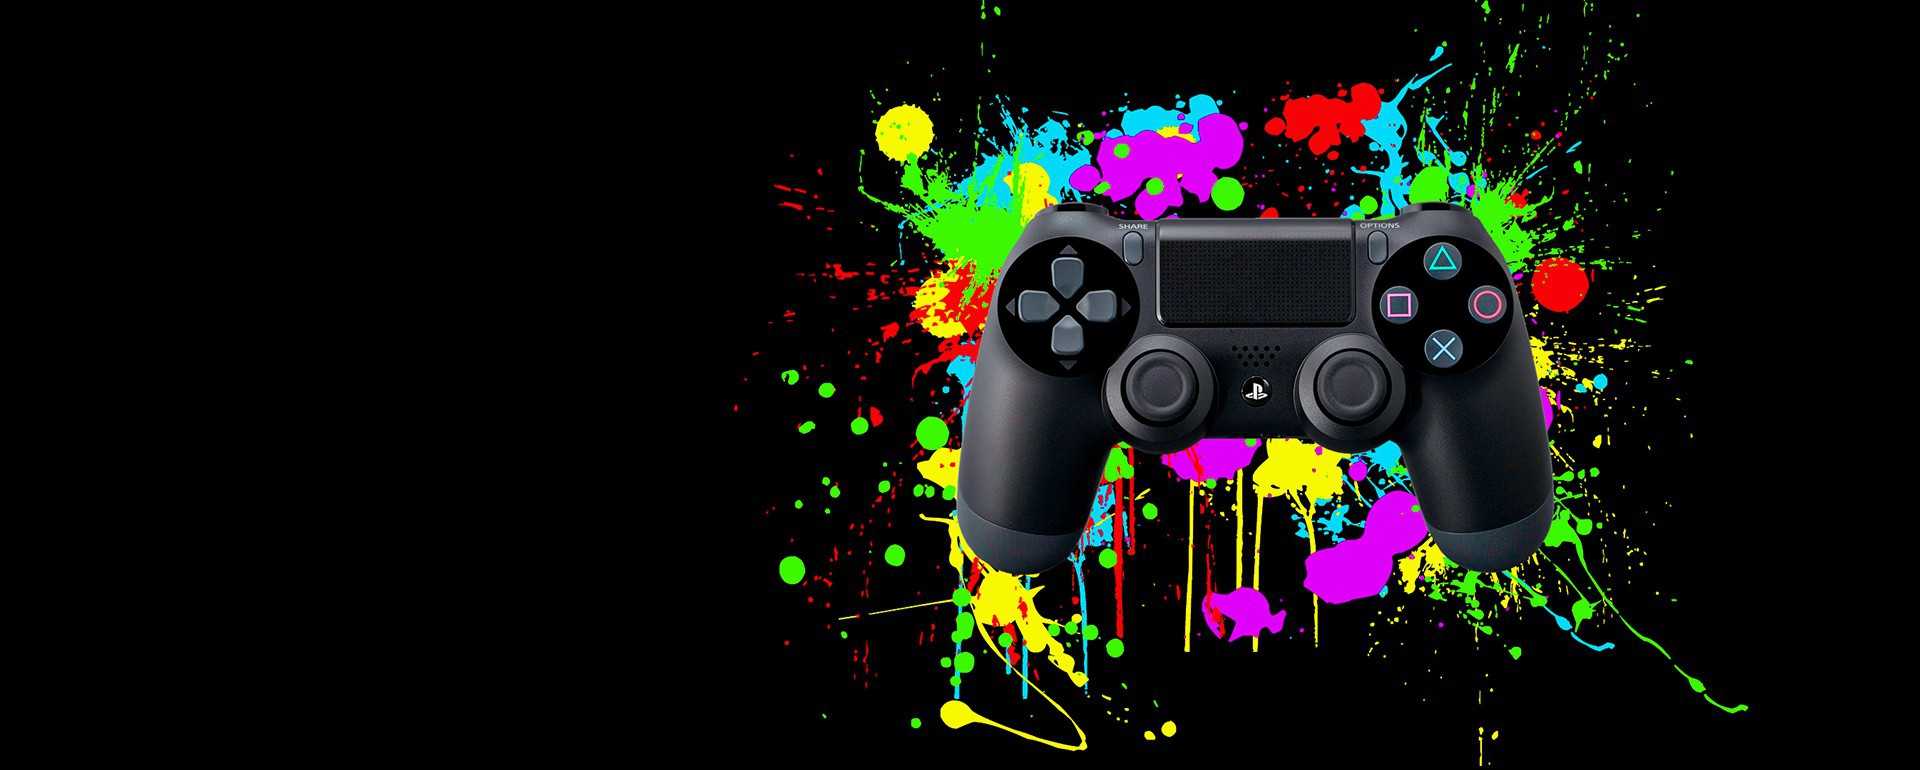 PS4 - Customizes your PS4 controller